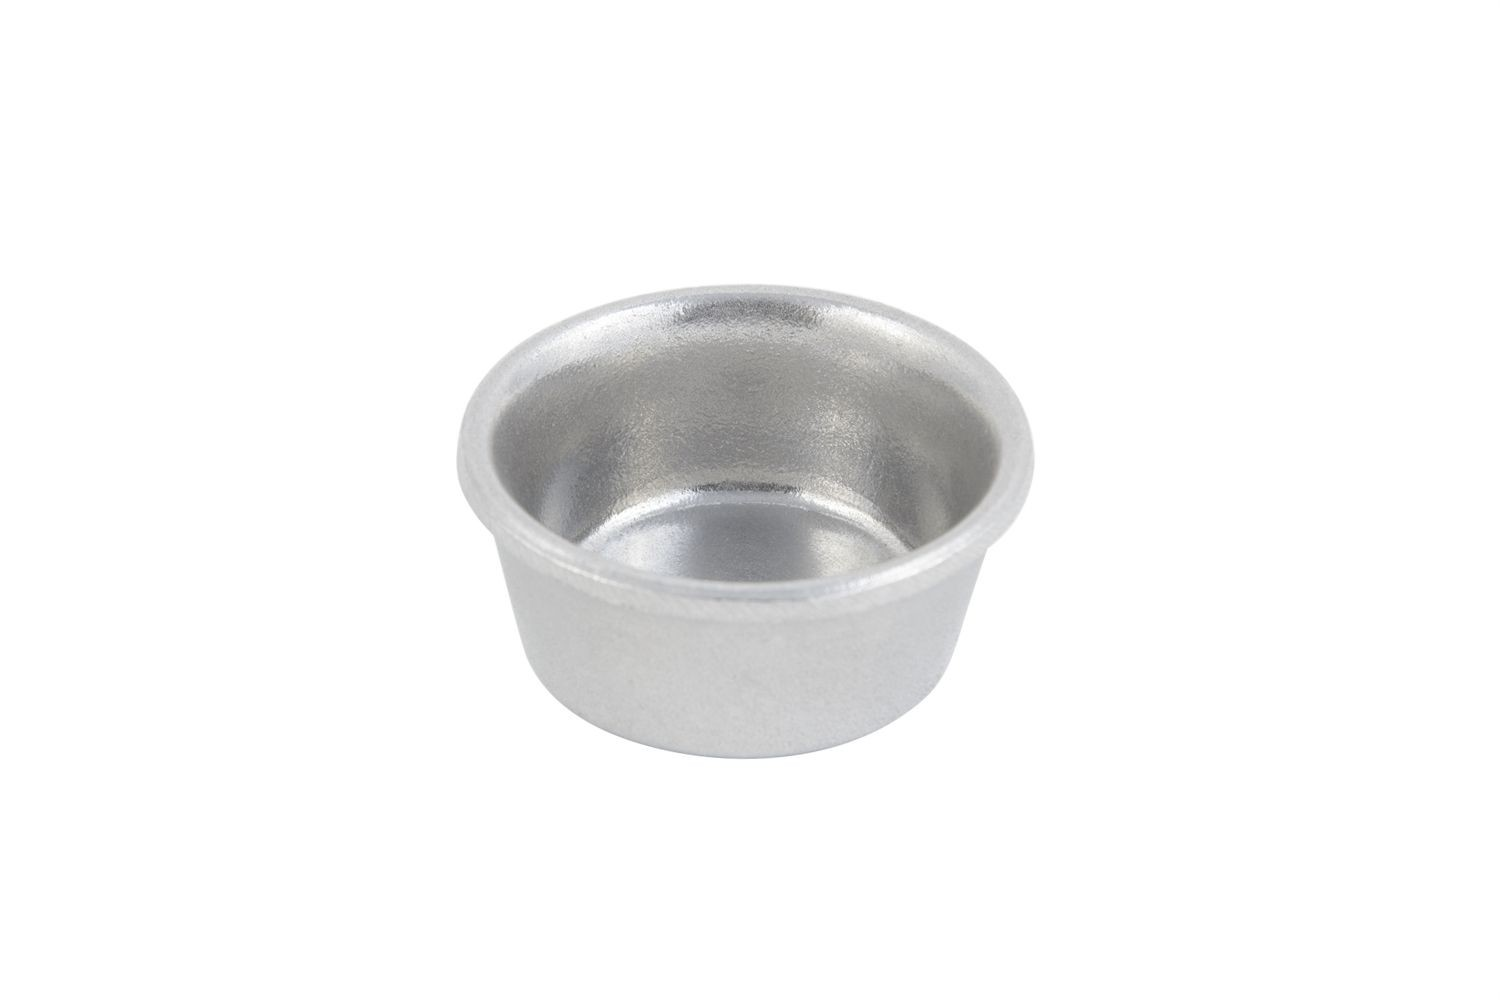 Bon Chef 9017P Ramekin, Pewter Glo 3 oz., Set of 24